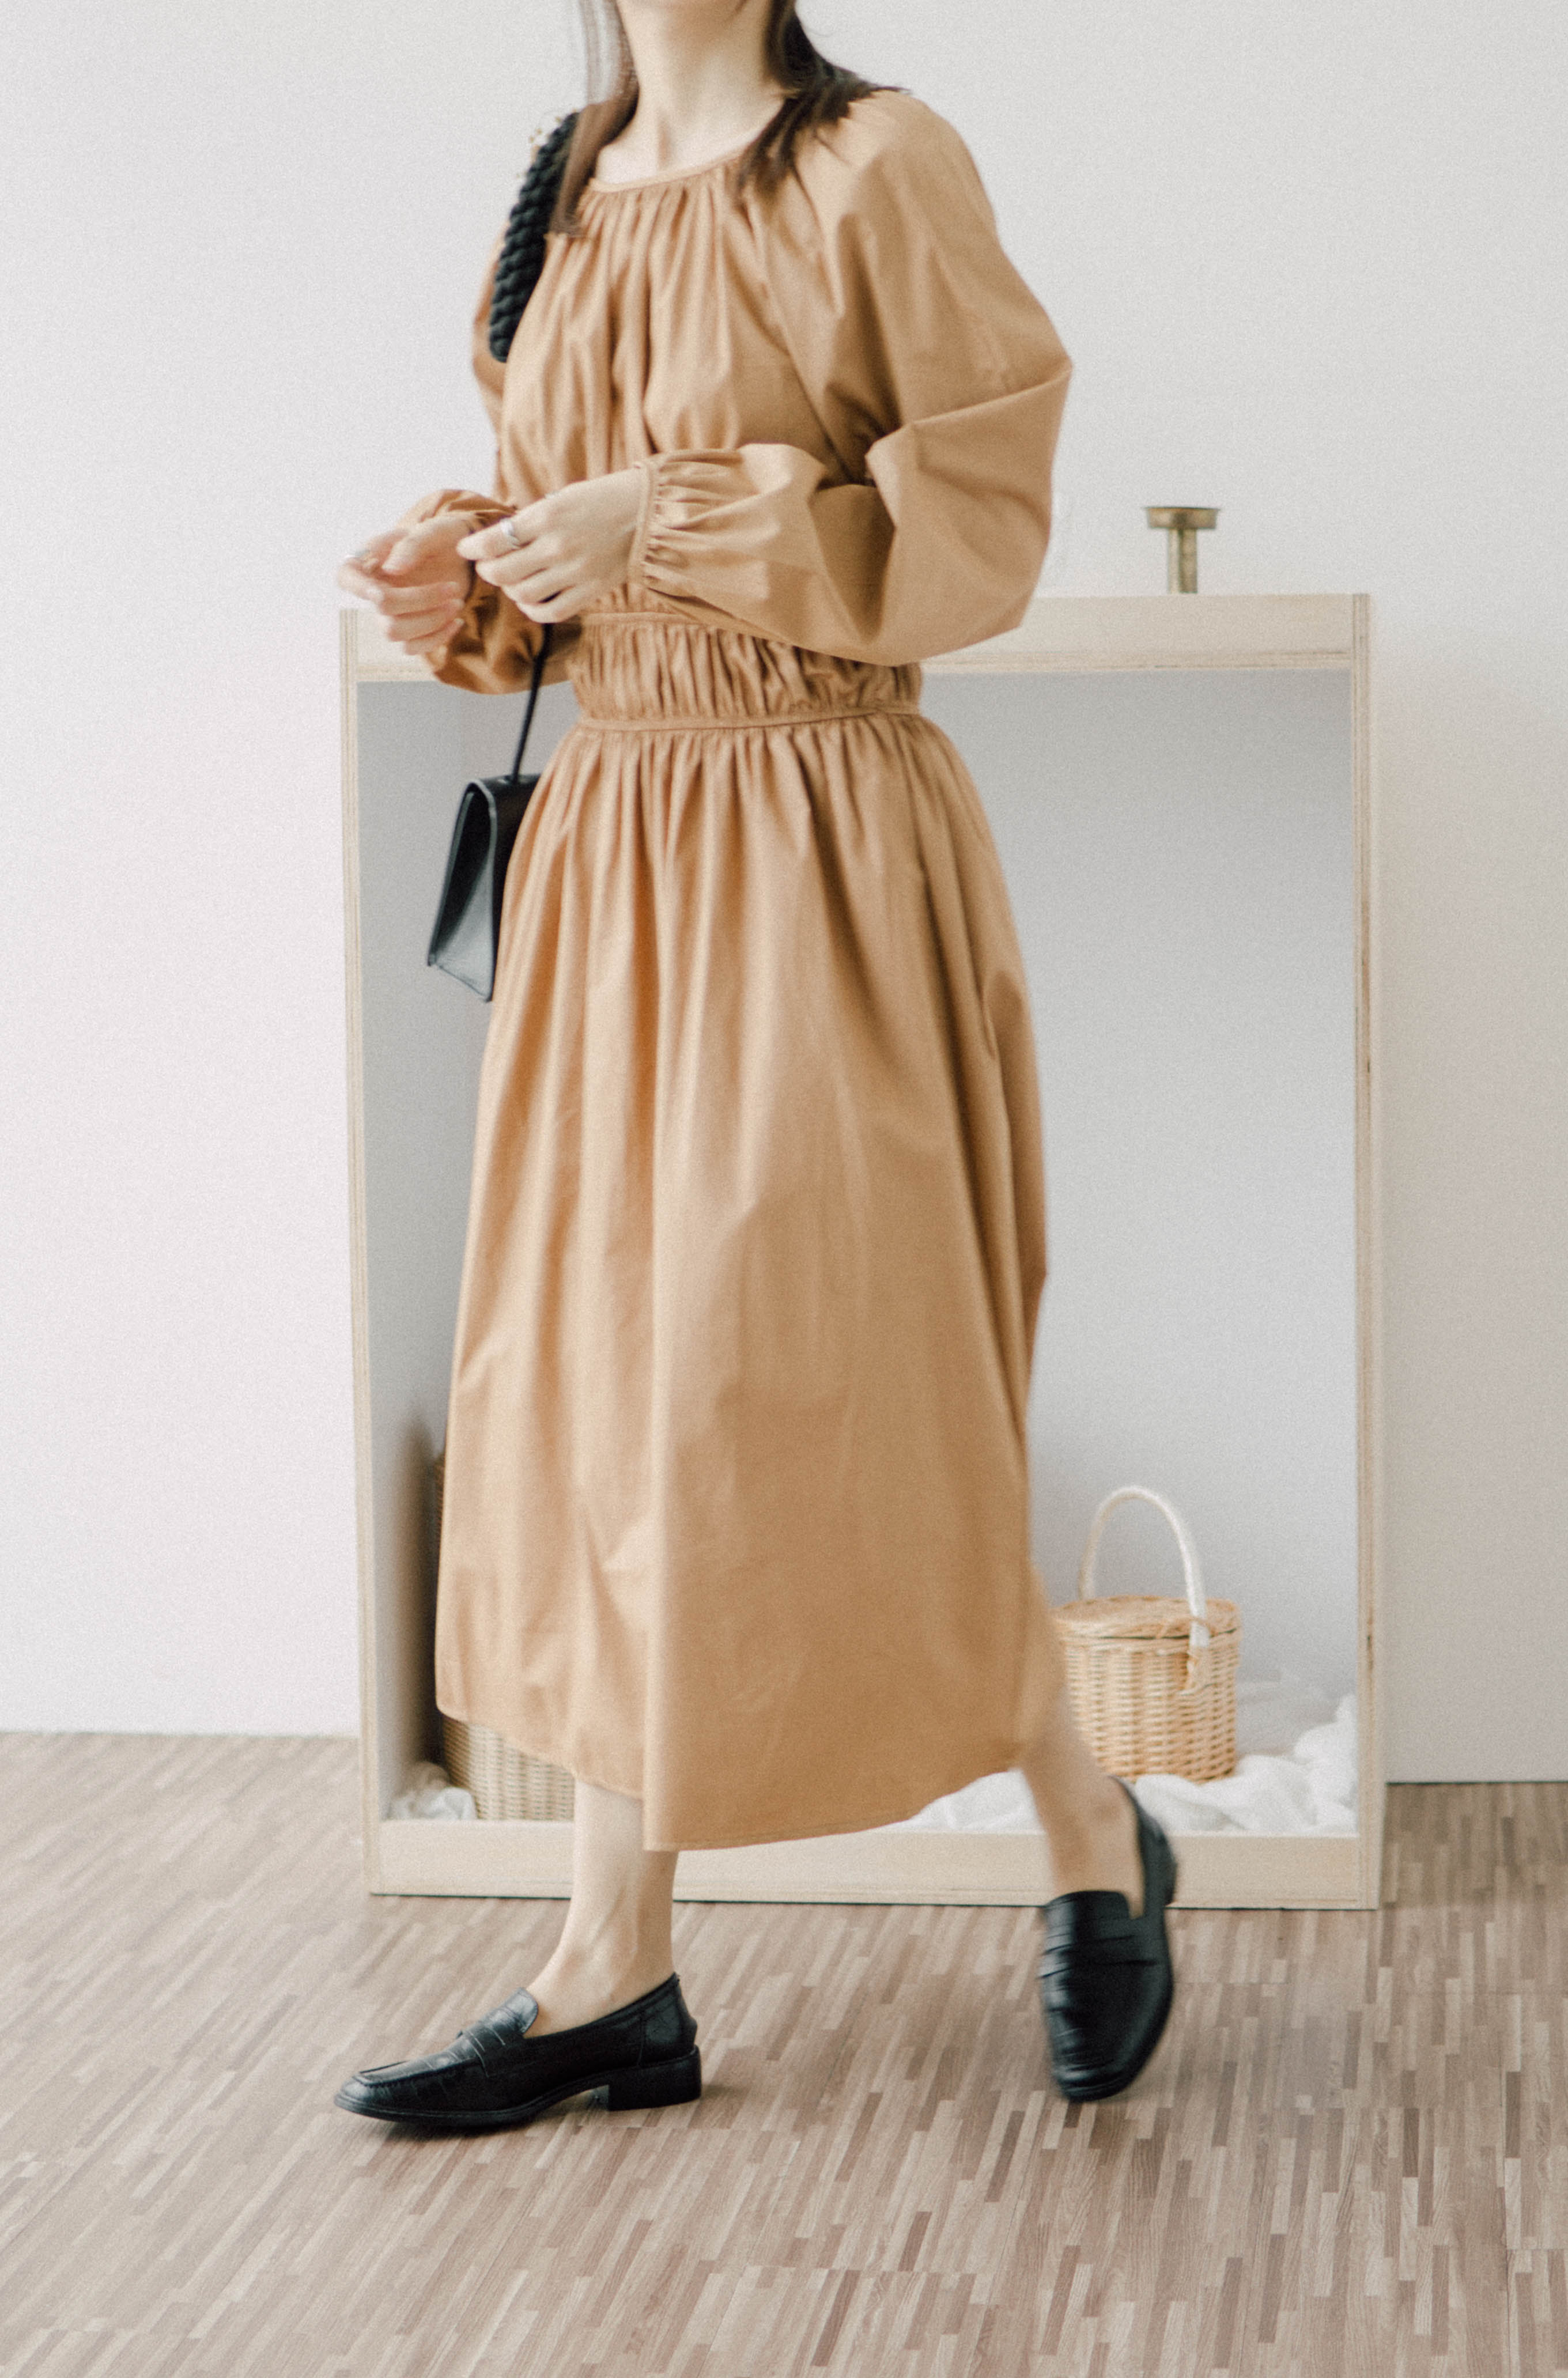 Pleated knee-length dress in brown